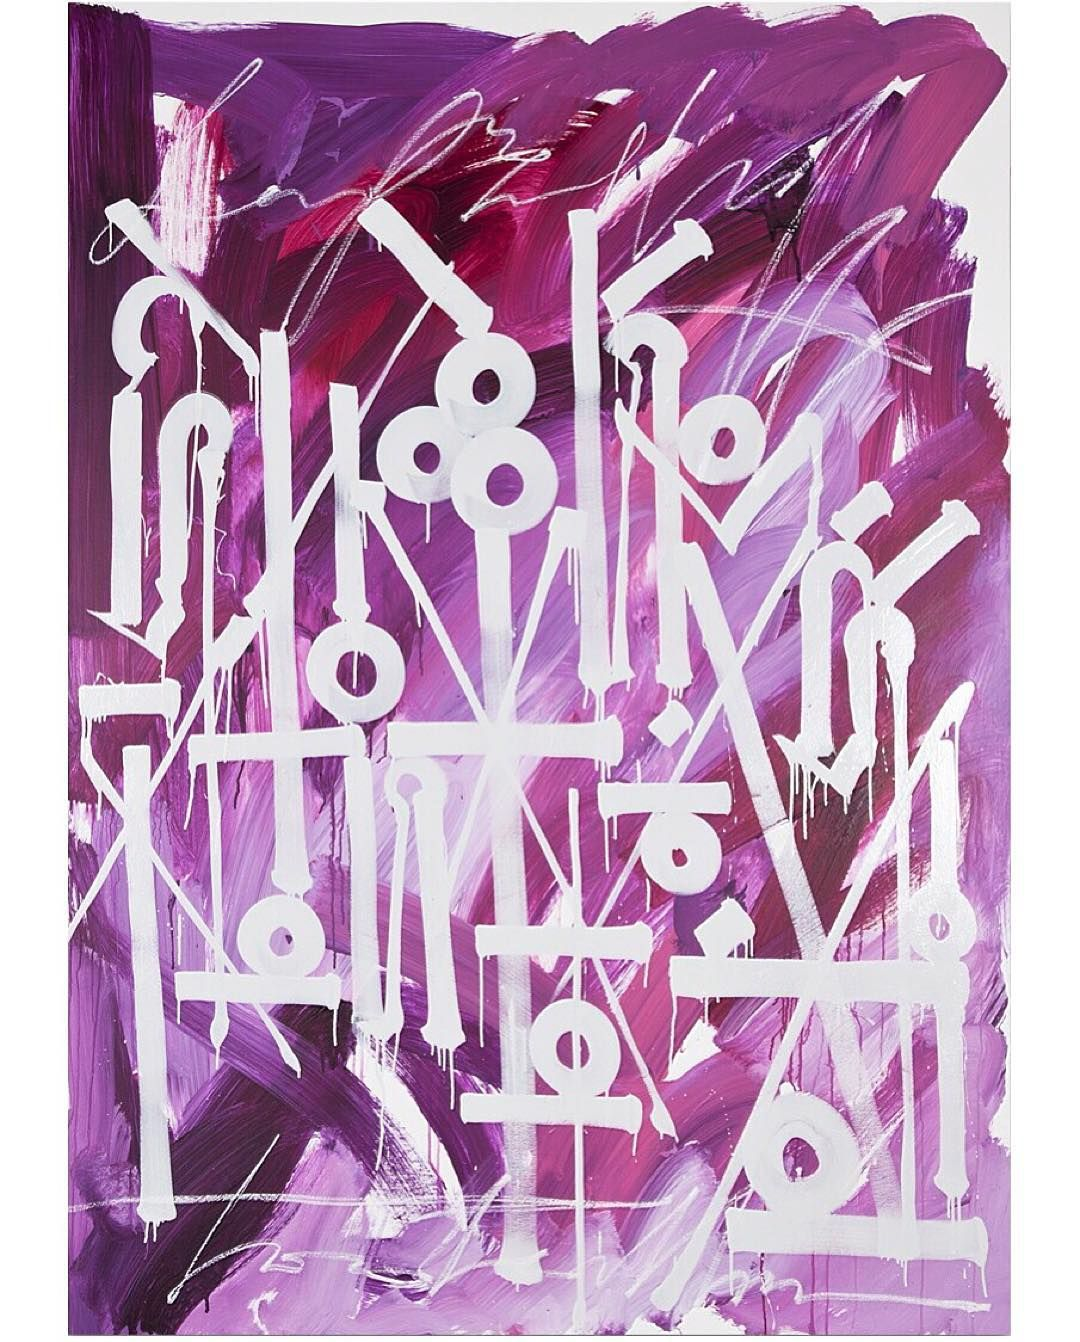 Beautiful RETNA work referencing the Battle Of Las Piedras in Uruguay a decisive battle for independence from the Spanish Monarchy.  For further details on works by Retna contact: info@newimageartgallery.com  @ironeyeretna #Retna #NewImageArt #LasPiedras #Battle #Revolution by newimageart